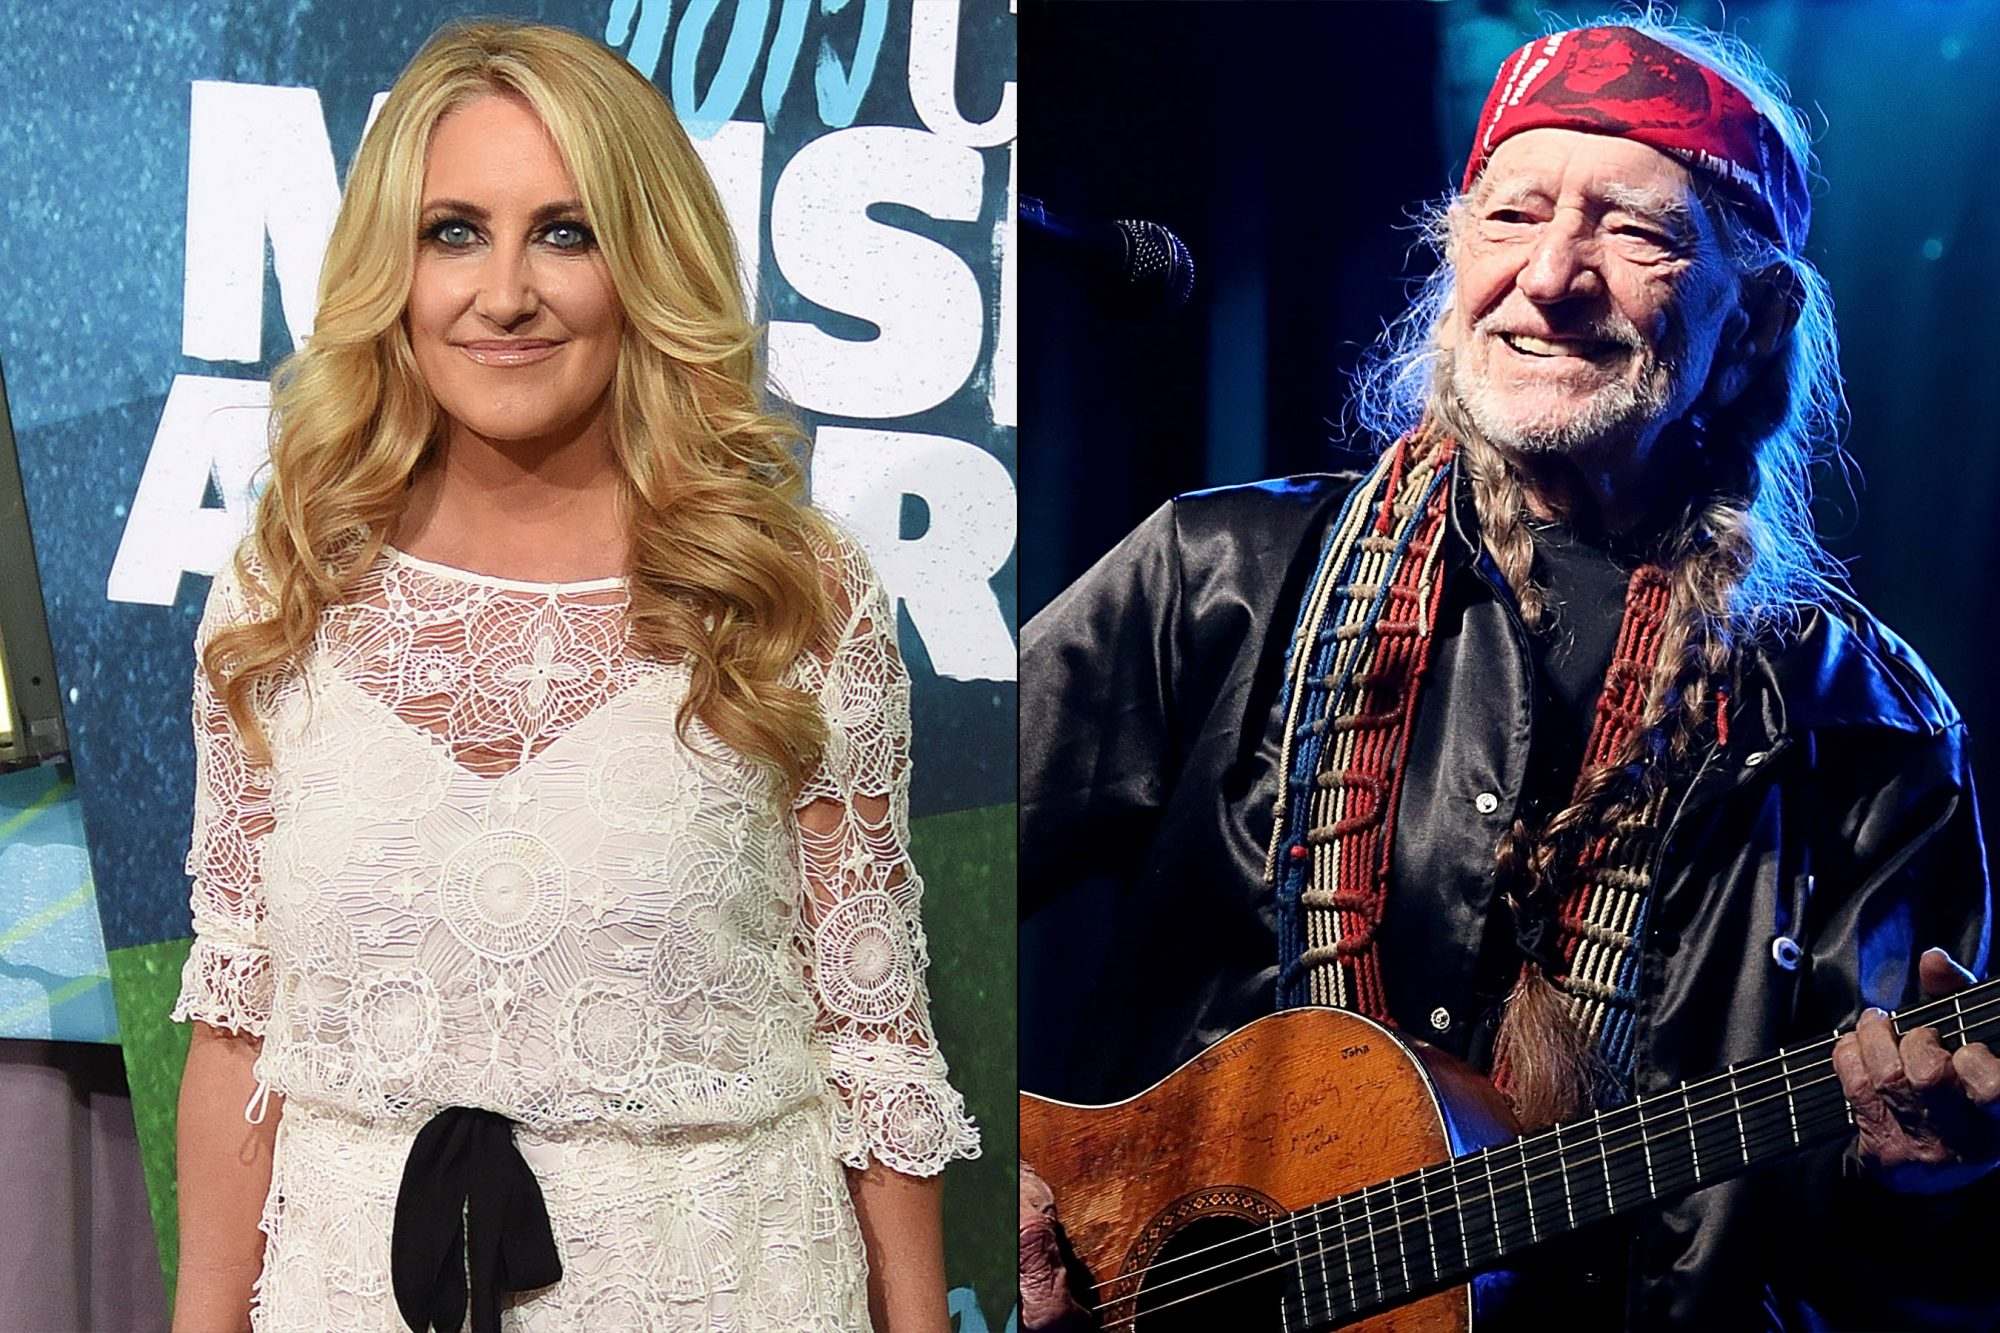 Hear Lee Ann Womack and Willie Nelson's charming 'Baby, It's Cold Outside' cover